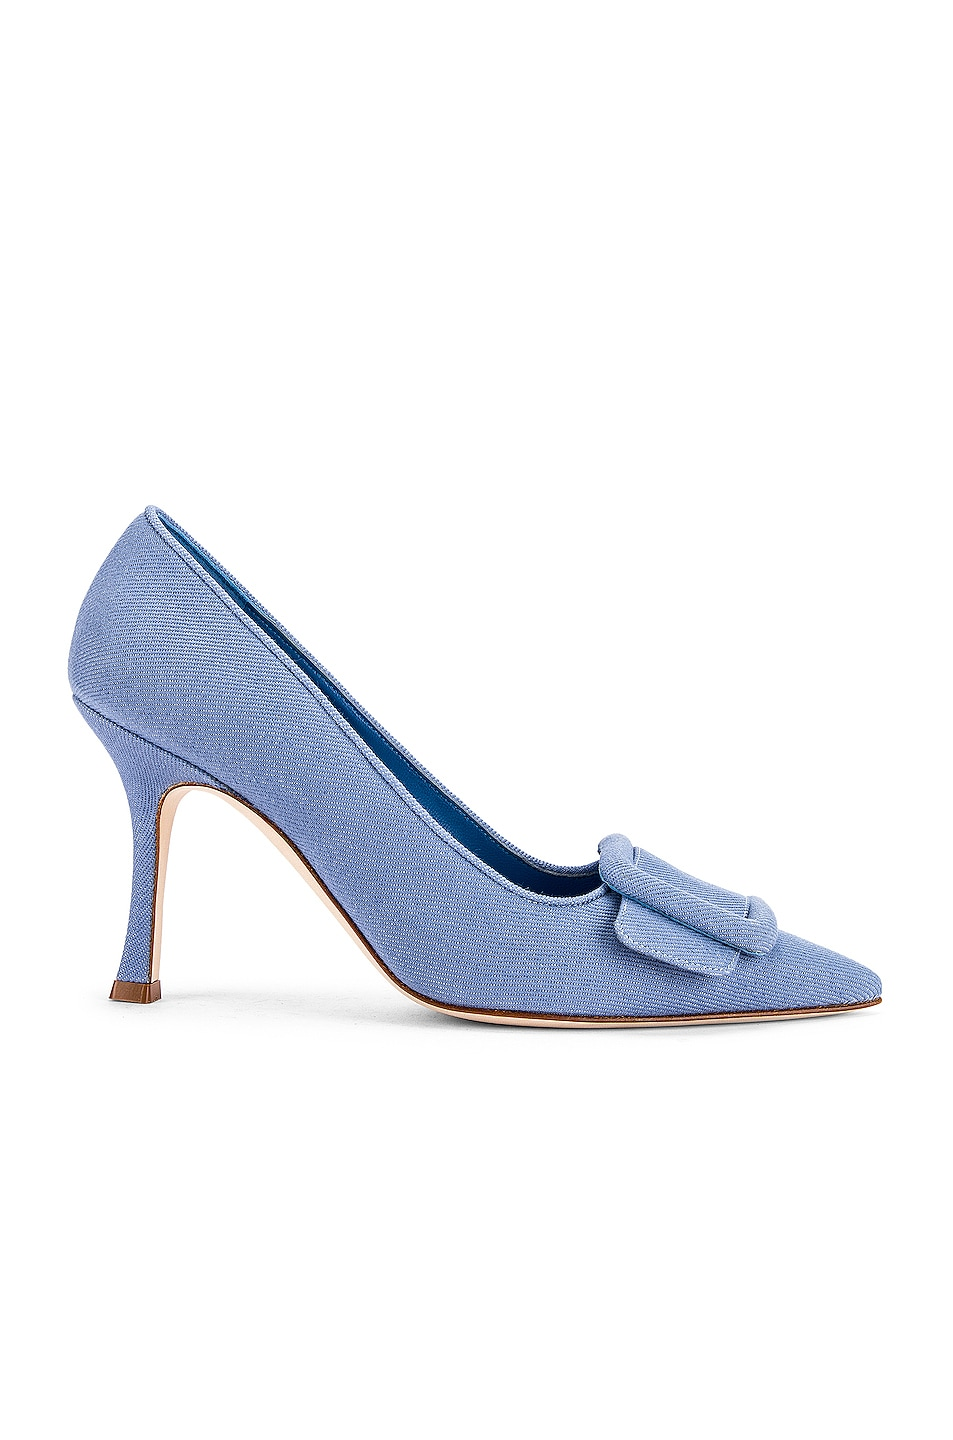 Image 1 of Manolo Blahnik Maysale 90 Pump in Light Blue Jean